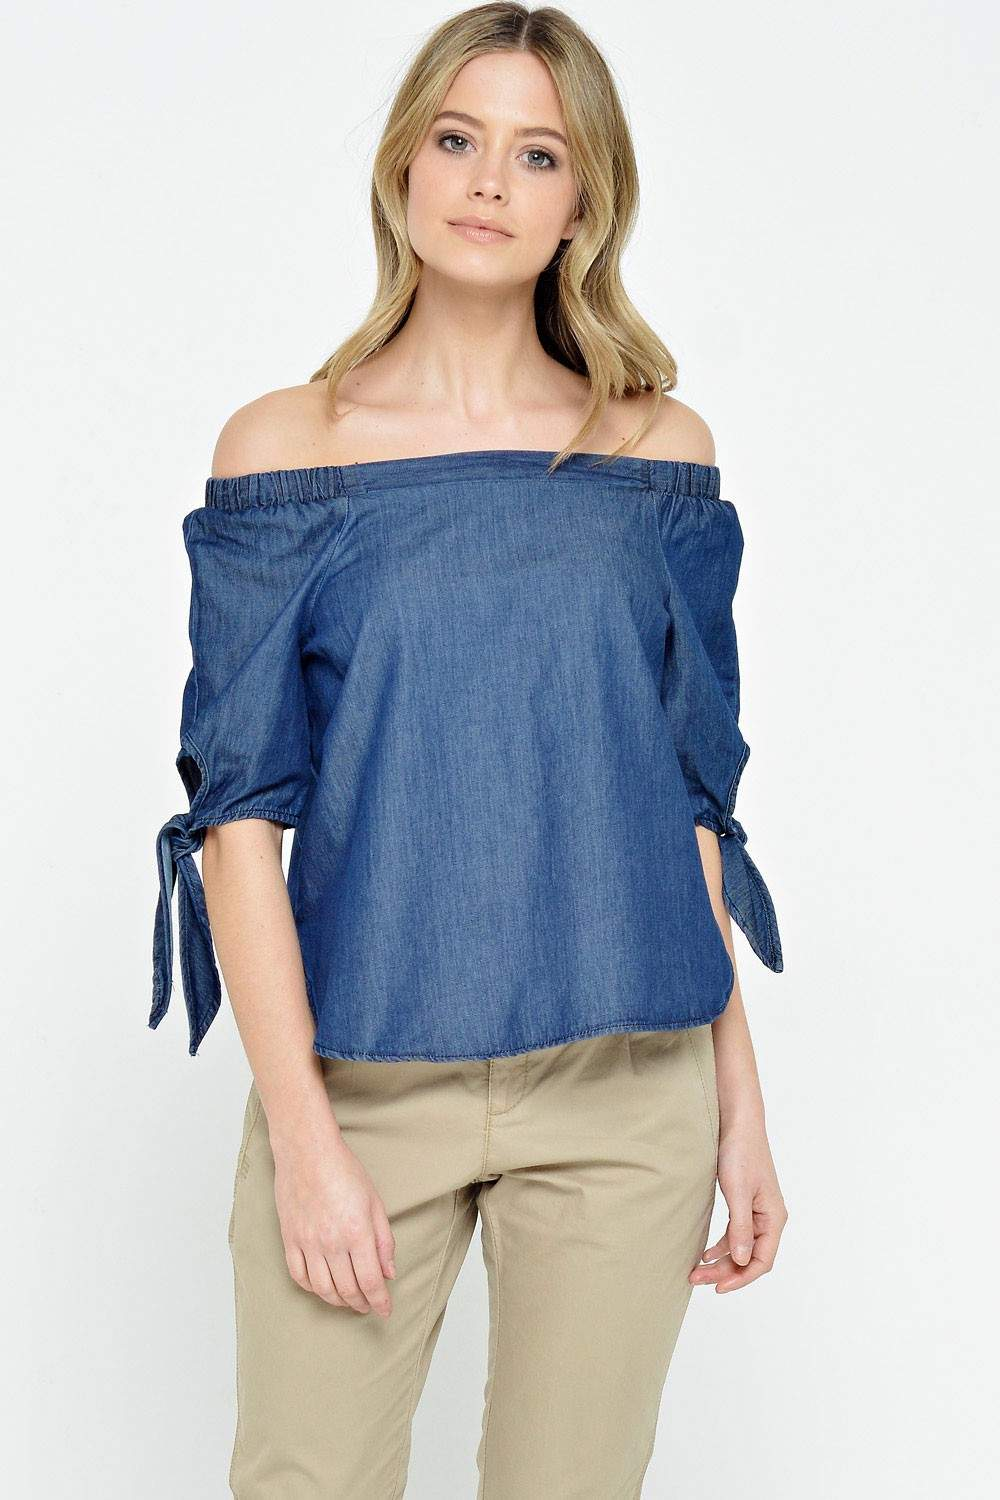 Vero moda emilia 2 4 chambray top in dark blue iclothing for Chambray top